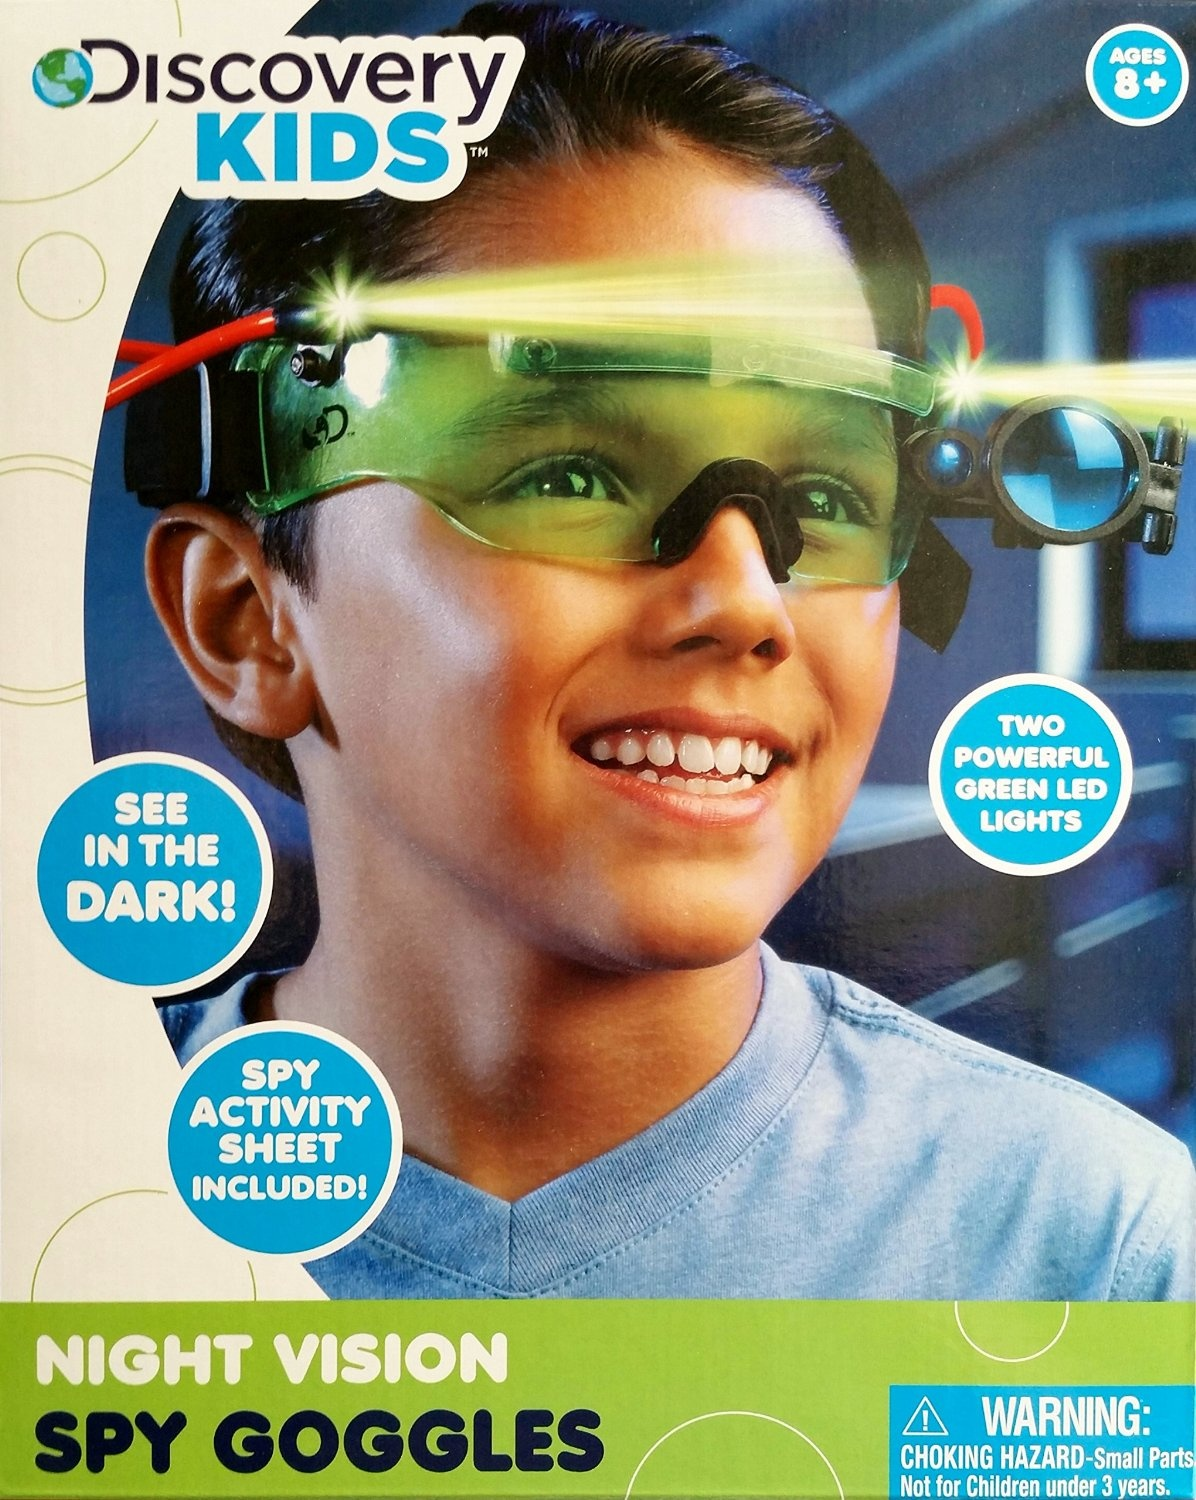 Scope NEW Discovery Kids NIGHT Vision SPY Goggles See n the Dark 2 LED Lights